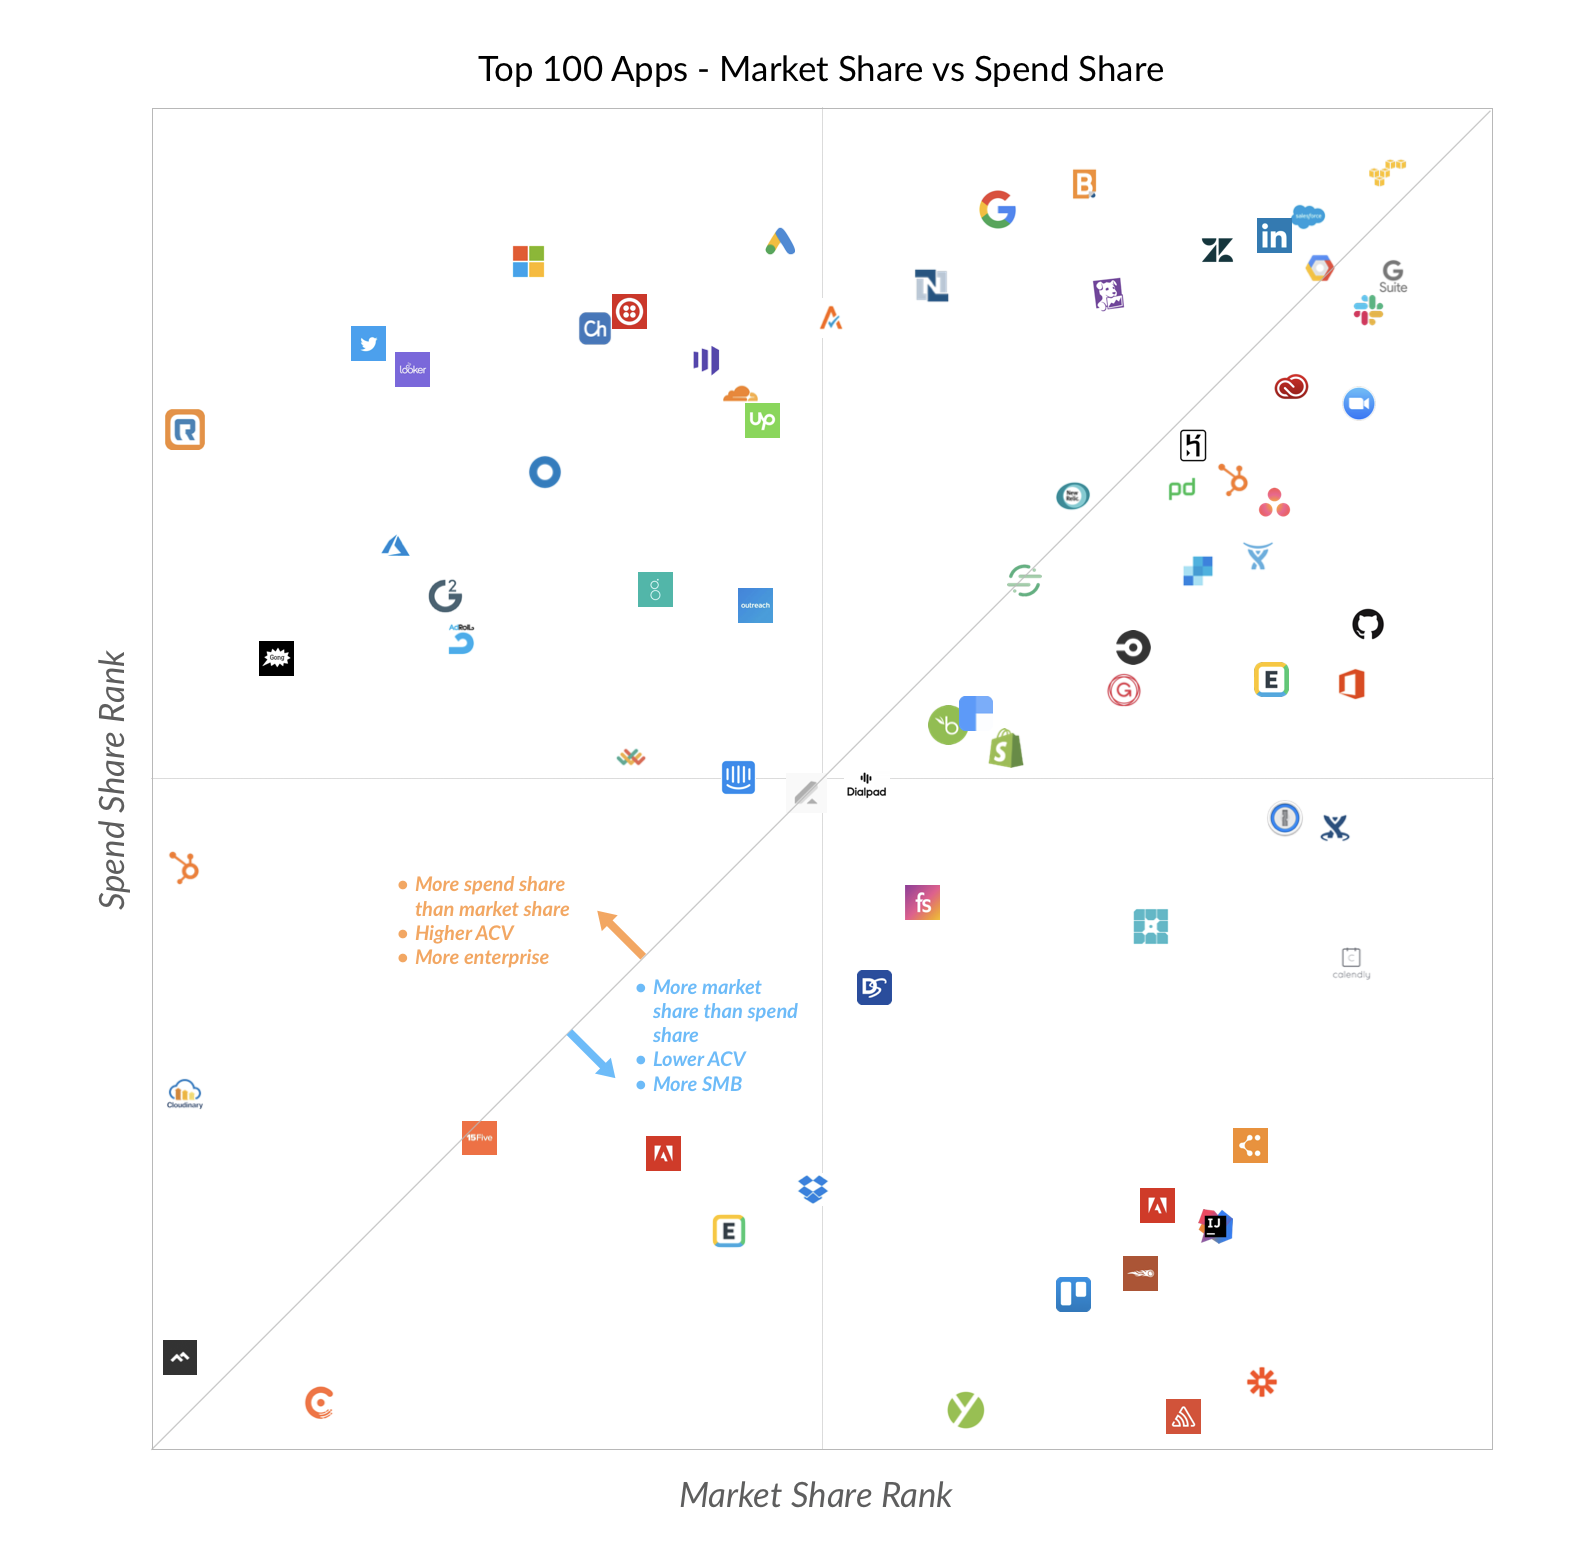 Top 100 SaaS Apps by market vs. spend share (2020)